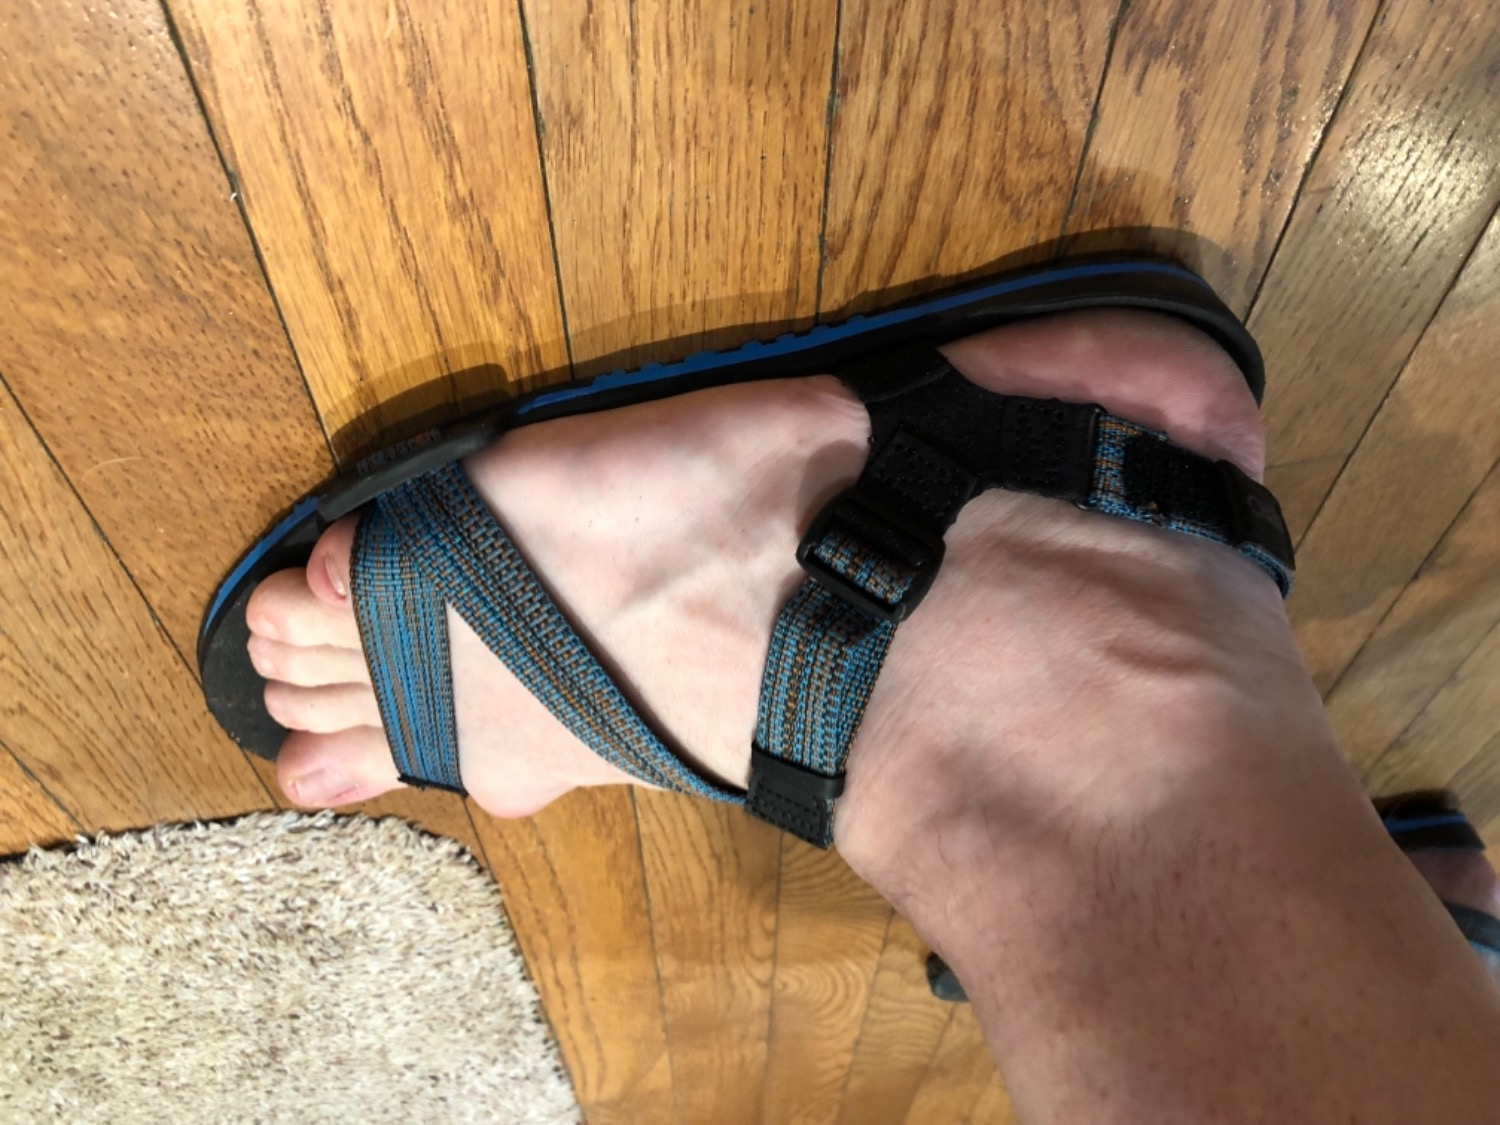 90a38910154 I have chronic heel and foot pain due to plantar fasciitis and bunions,  along with wide feet. Usually wear a 12EE, the size 11 Z-trails fit  perfectly.